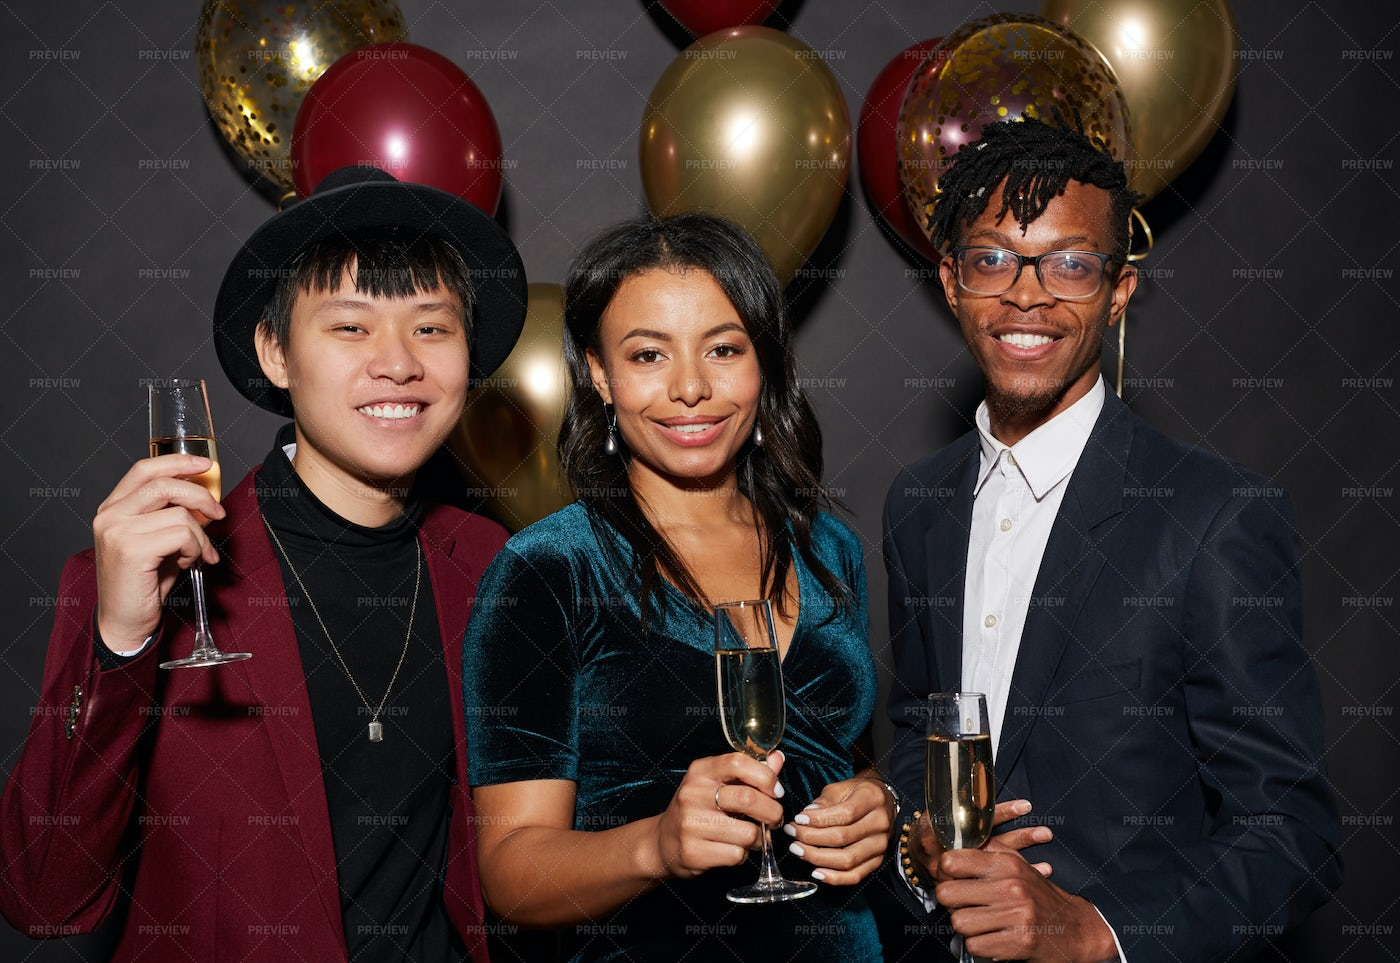 Ethnic Young People Posing At Party: Stock Photos